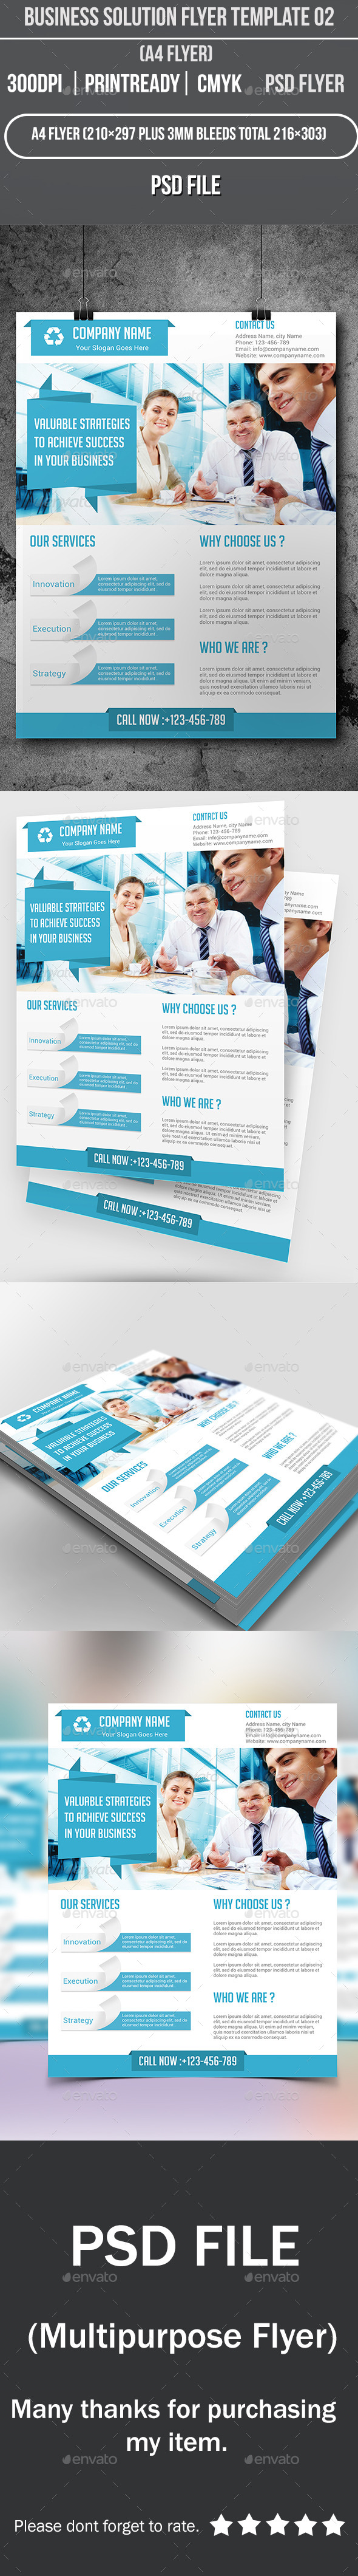 Business Solution Flyer Template 02 - Corporate Flyers